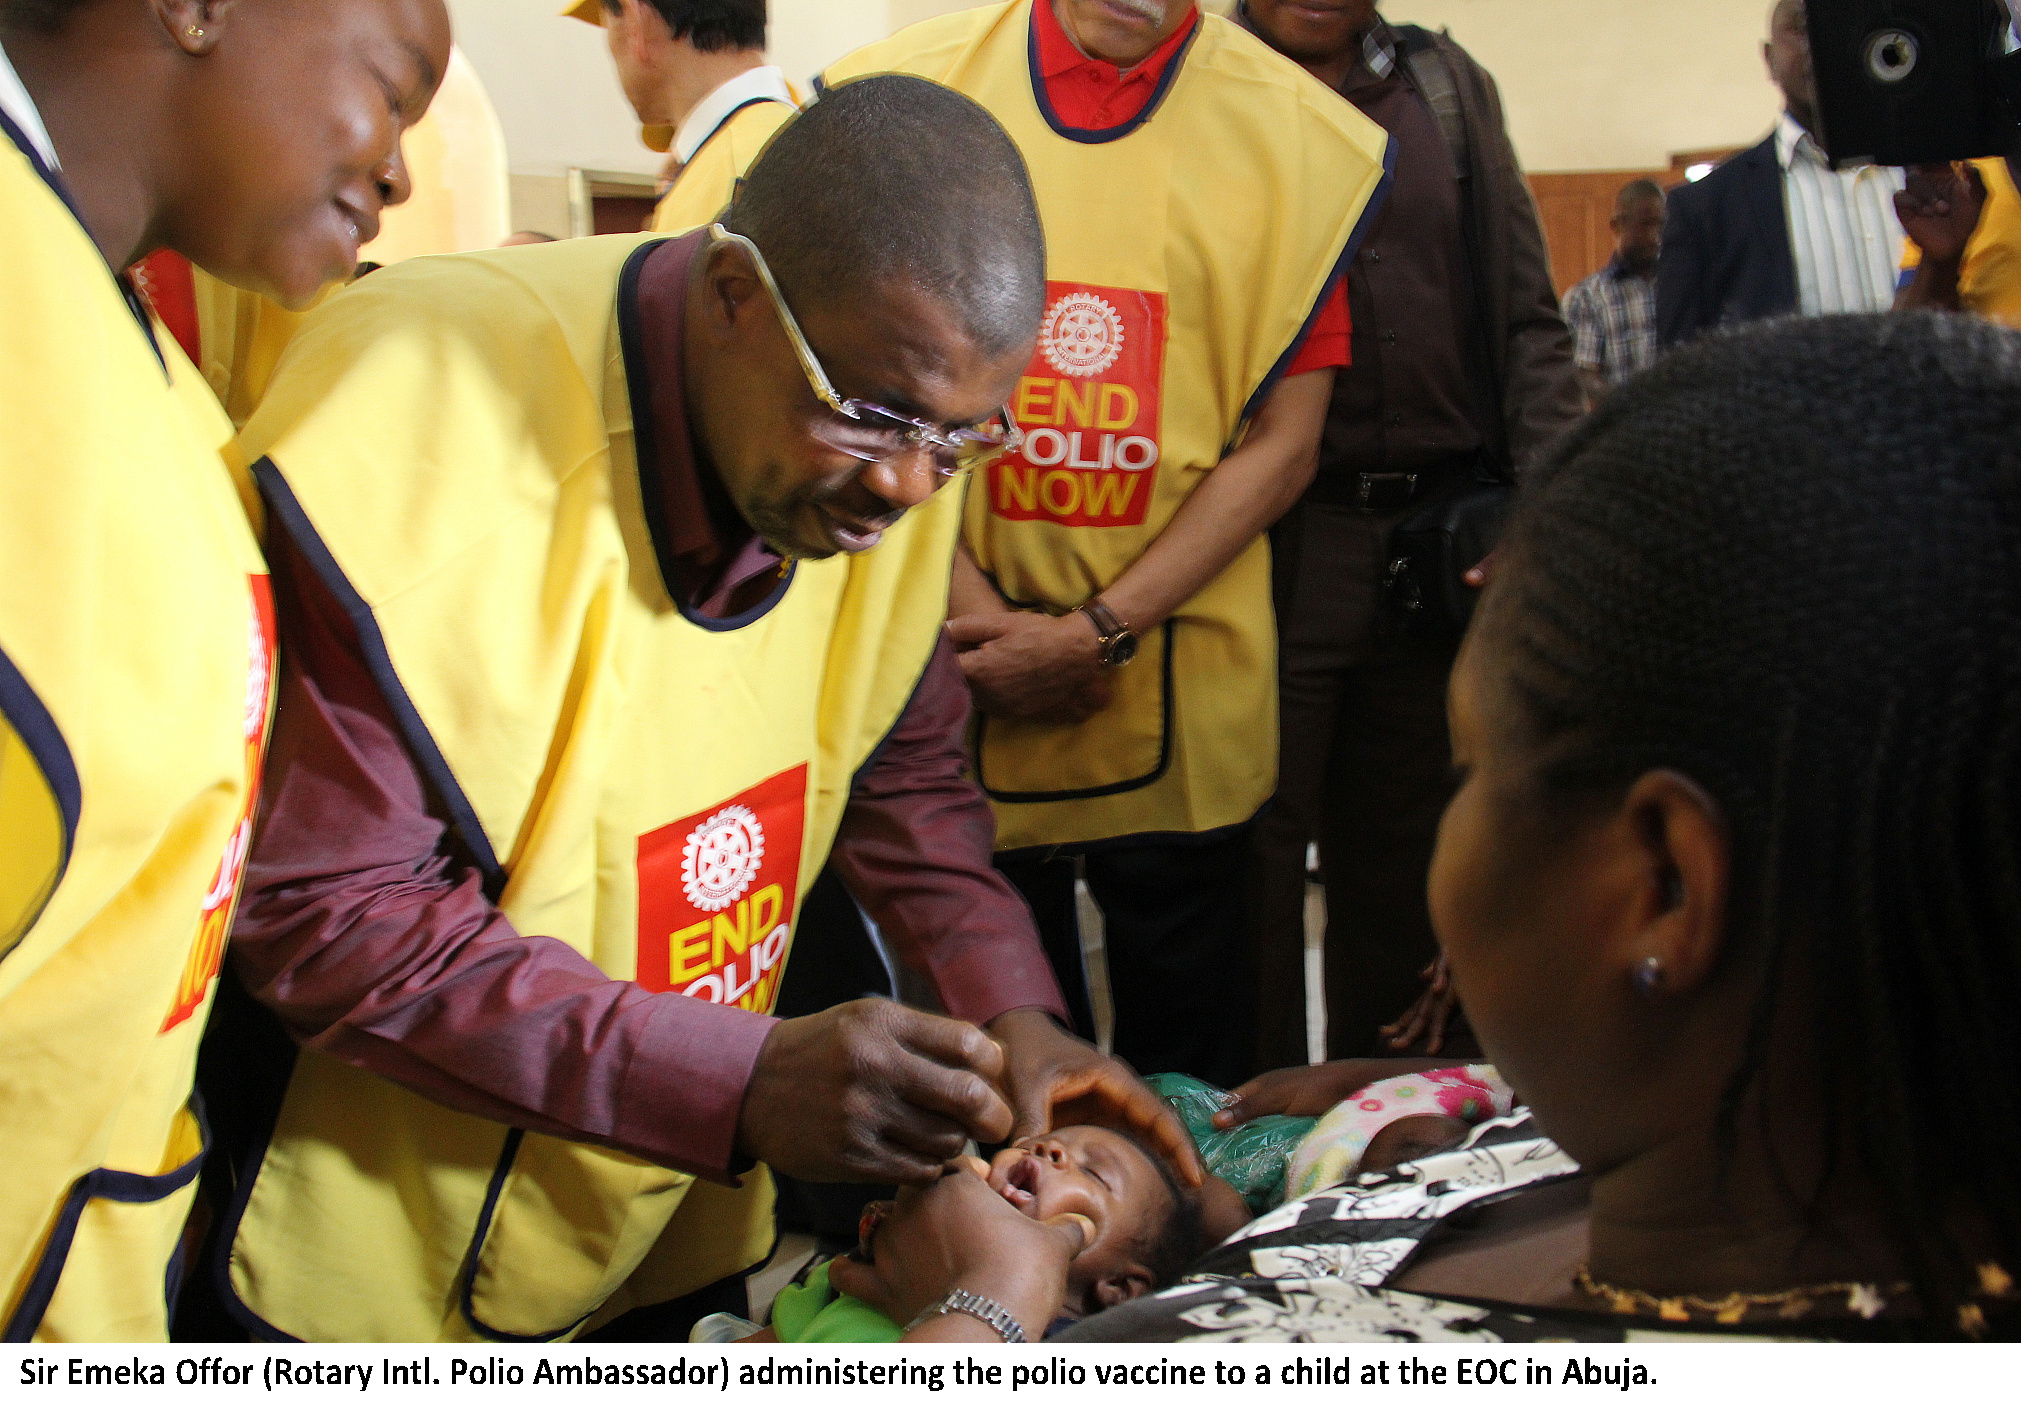 Sir Emeka Offor's giant strides to eradicate Polio